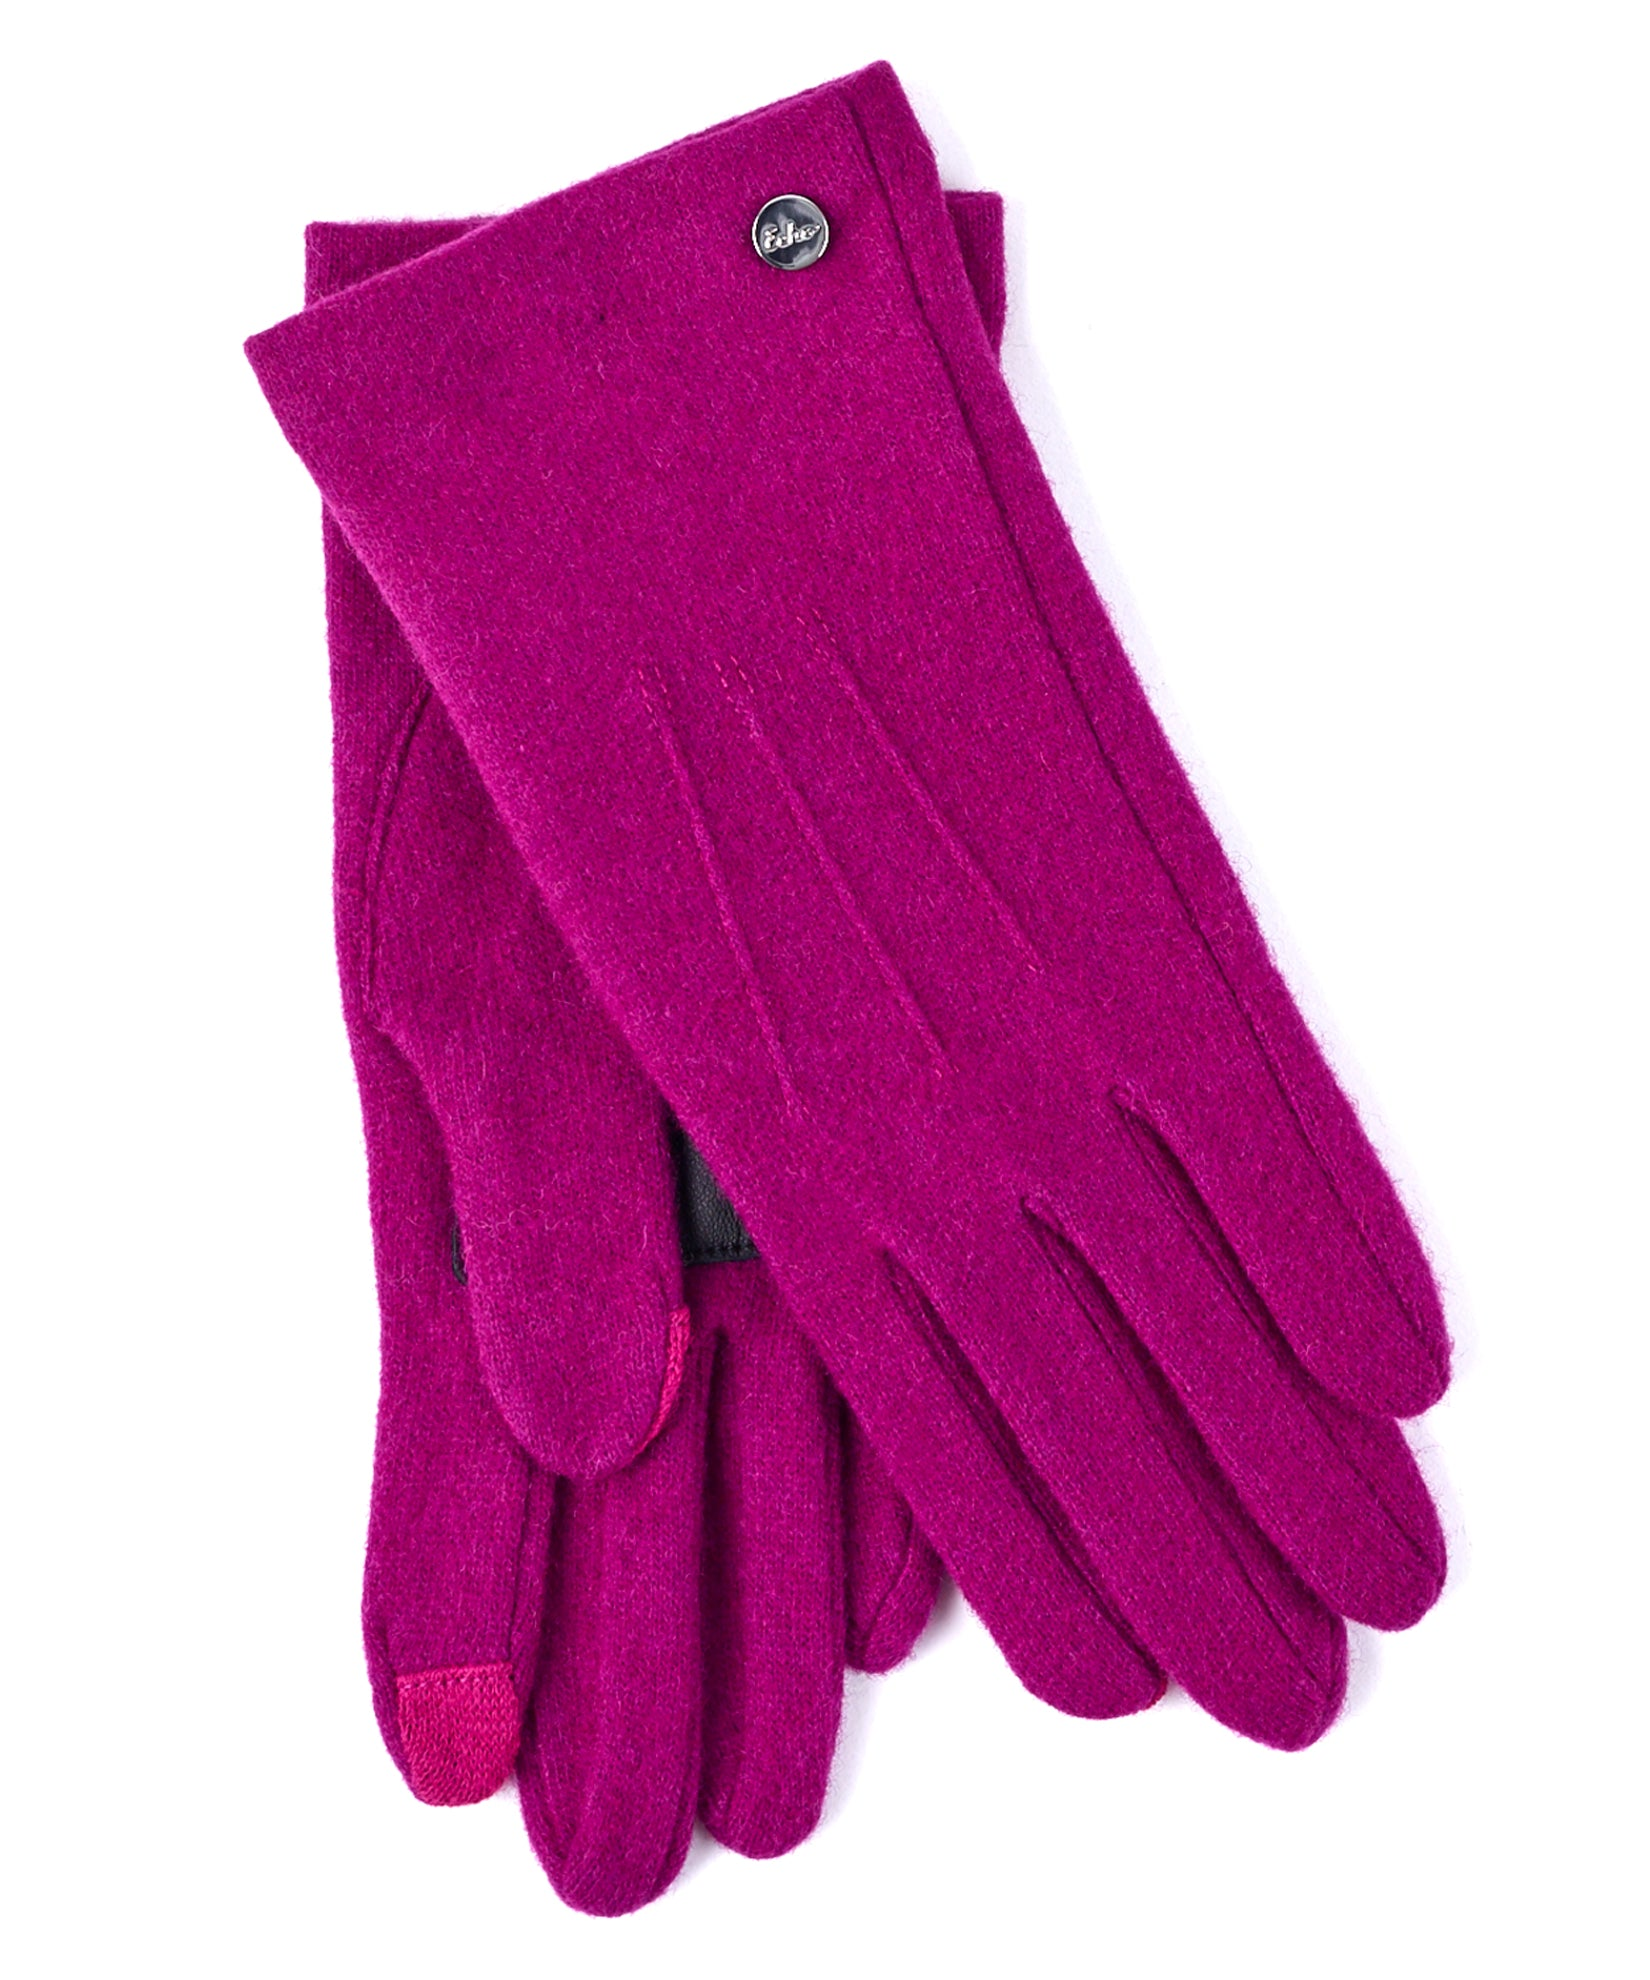 Indian Rose - Classic Glove